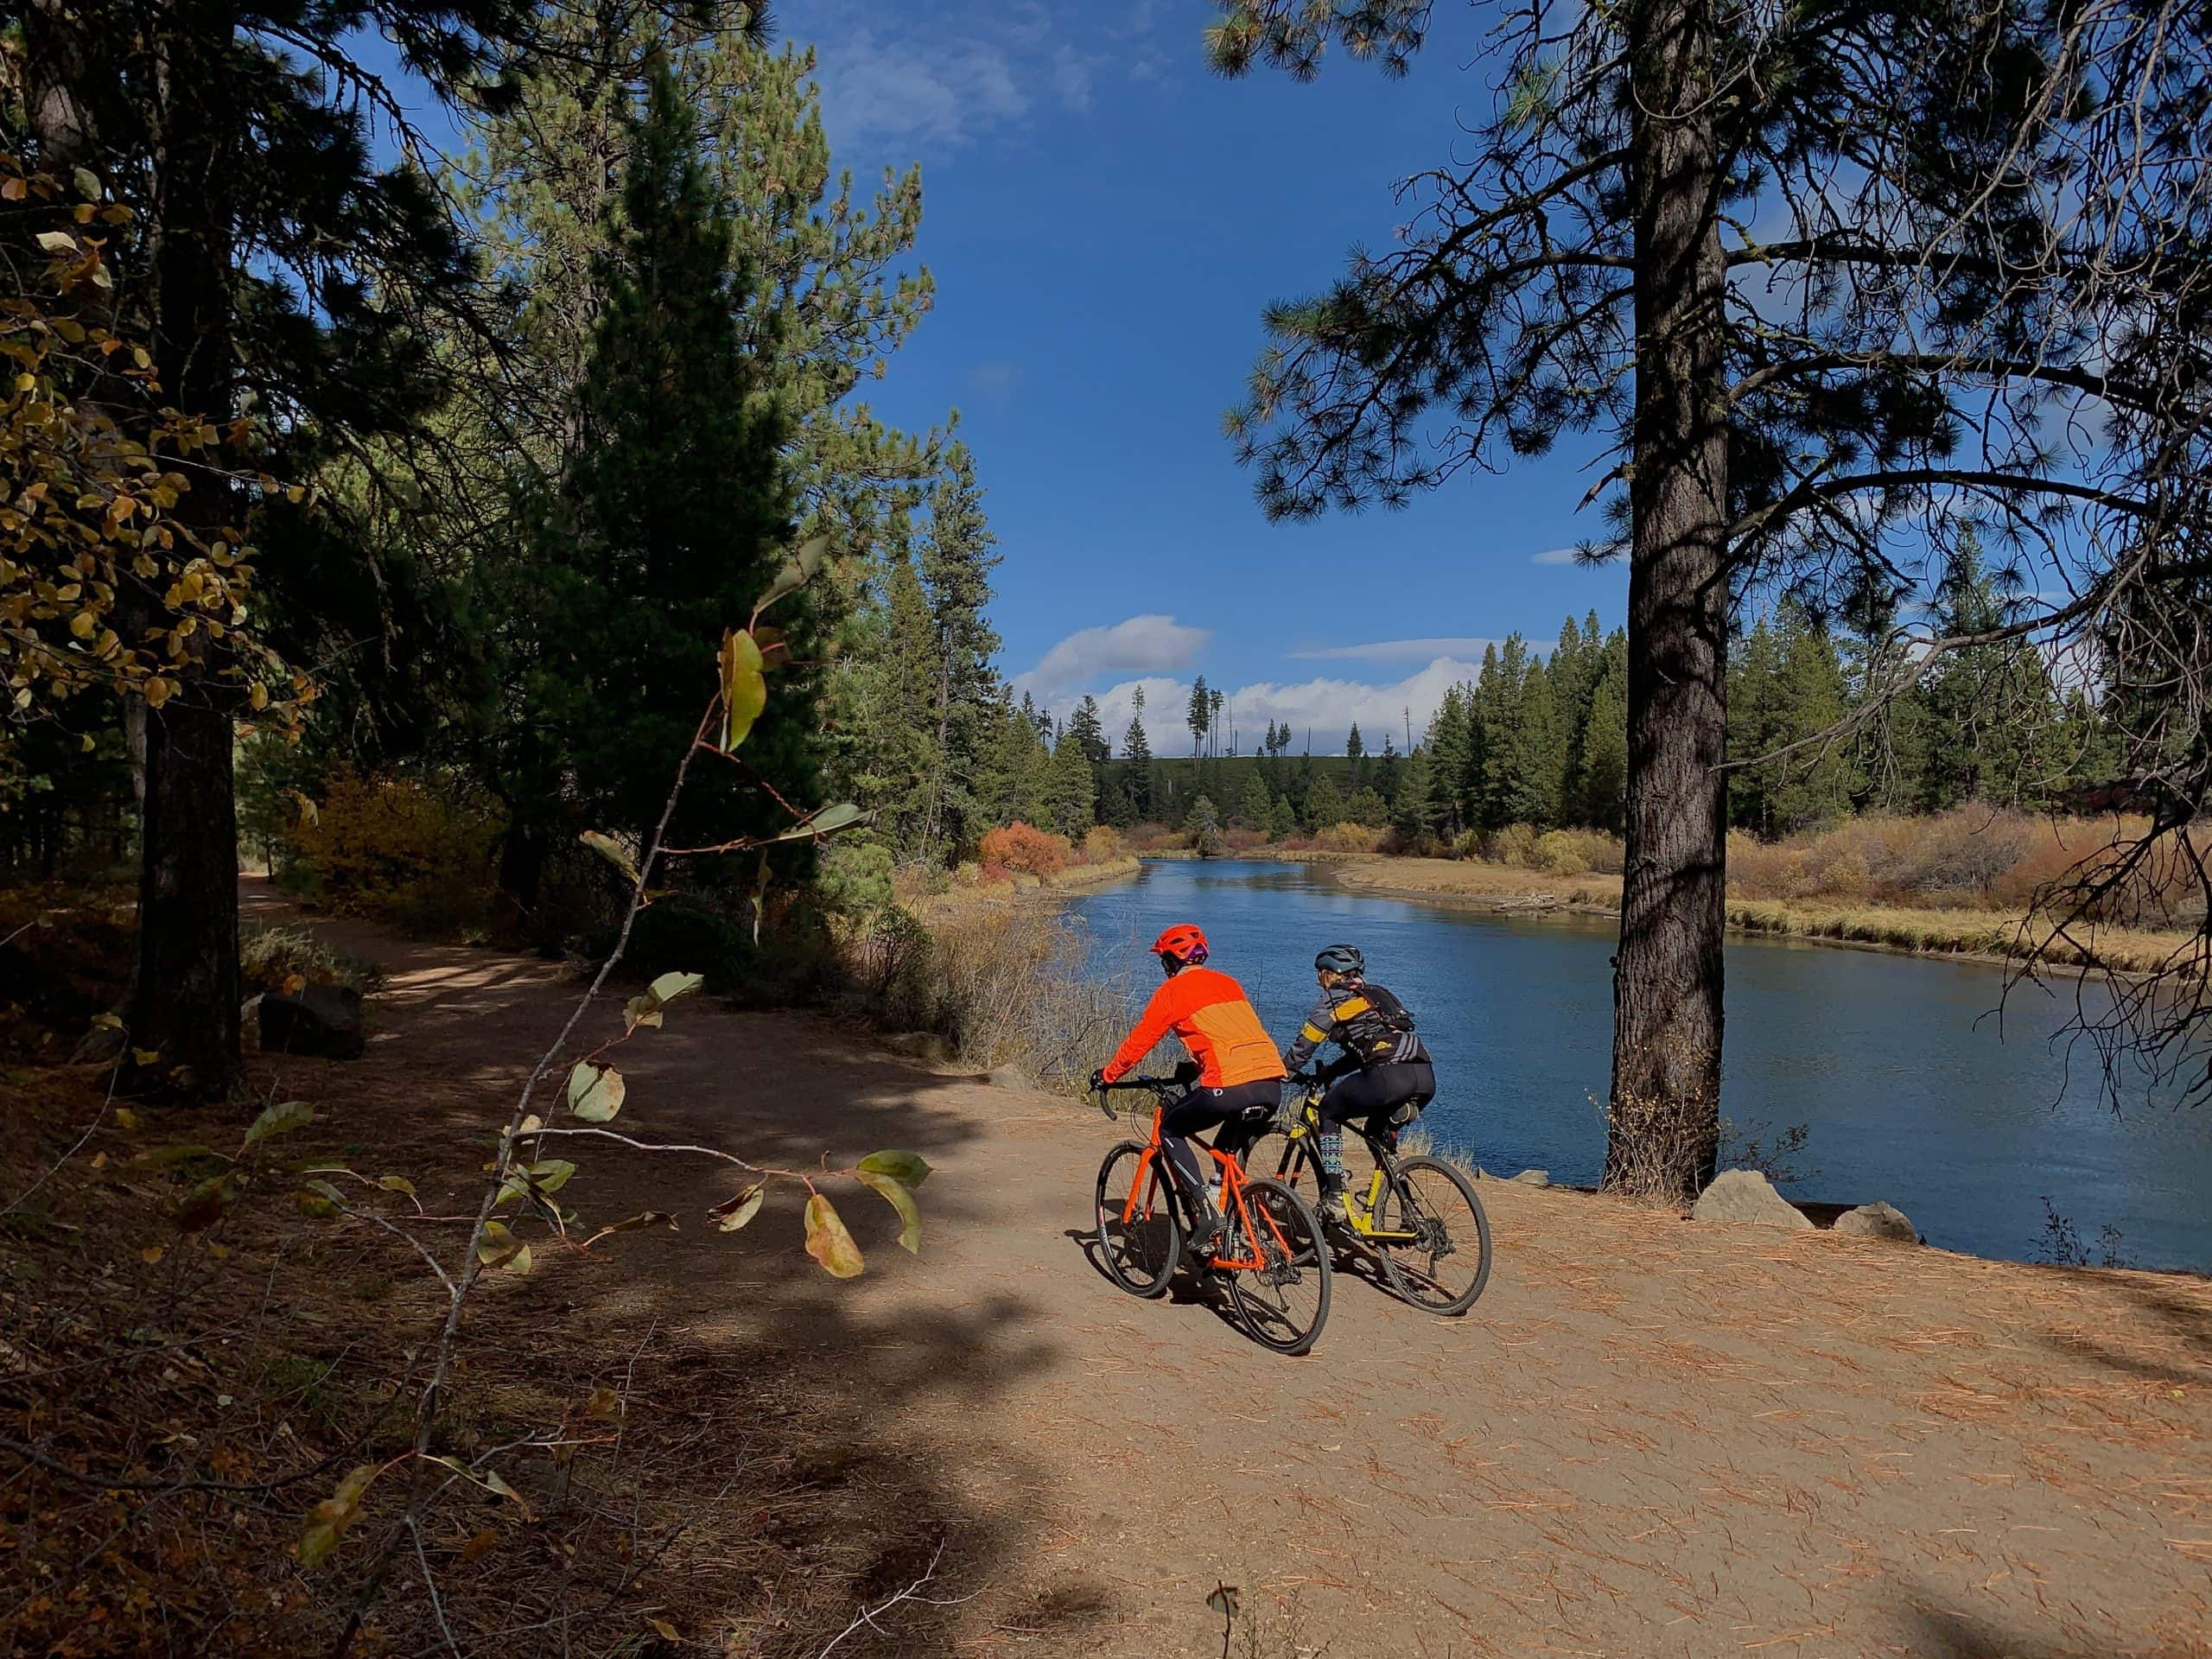 Two woman gravel cyclists on the dirt path between Benham Falls and the the wooden bridge near Sunriver, Oregon.